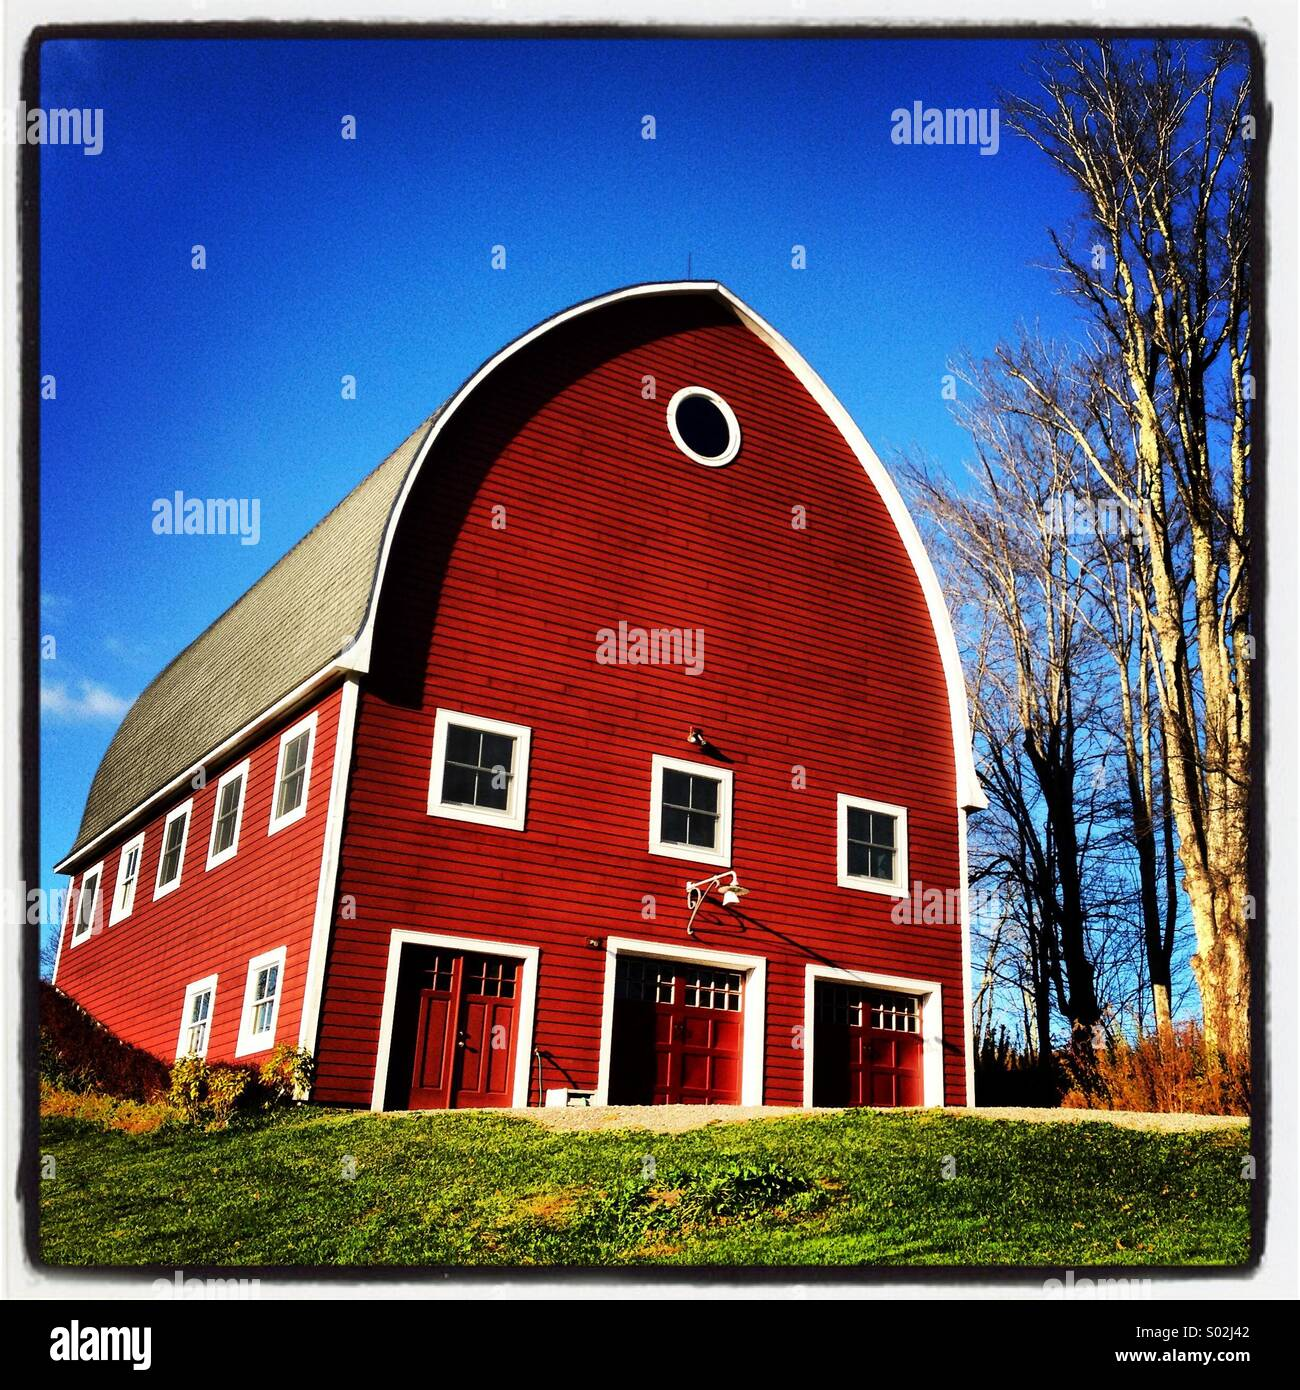 Classic lines on this big, red barn epitomize country living. - Stock Image